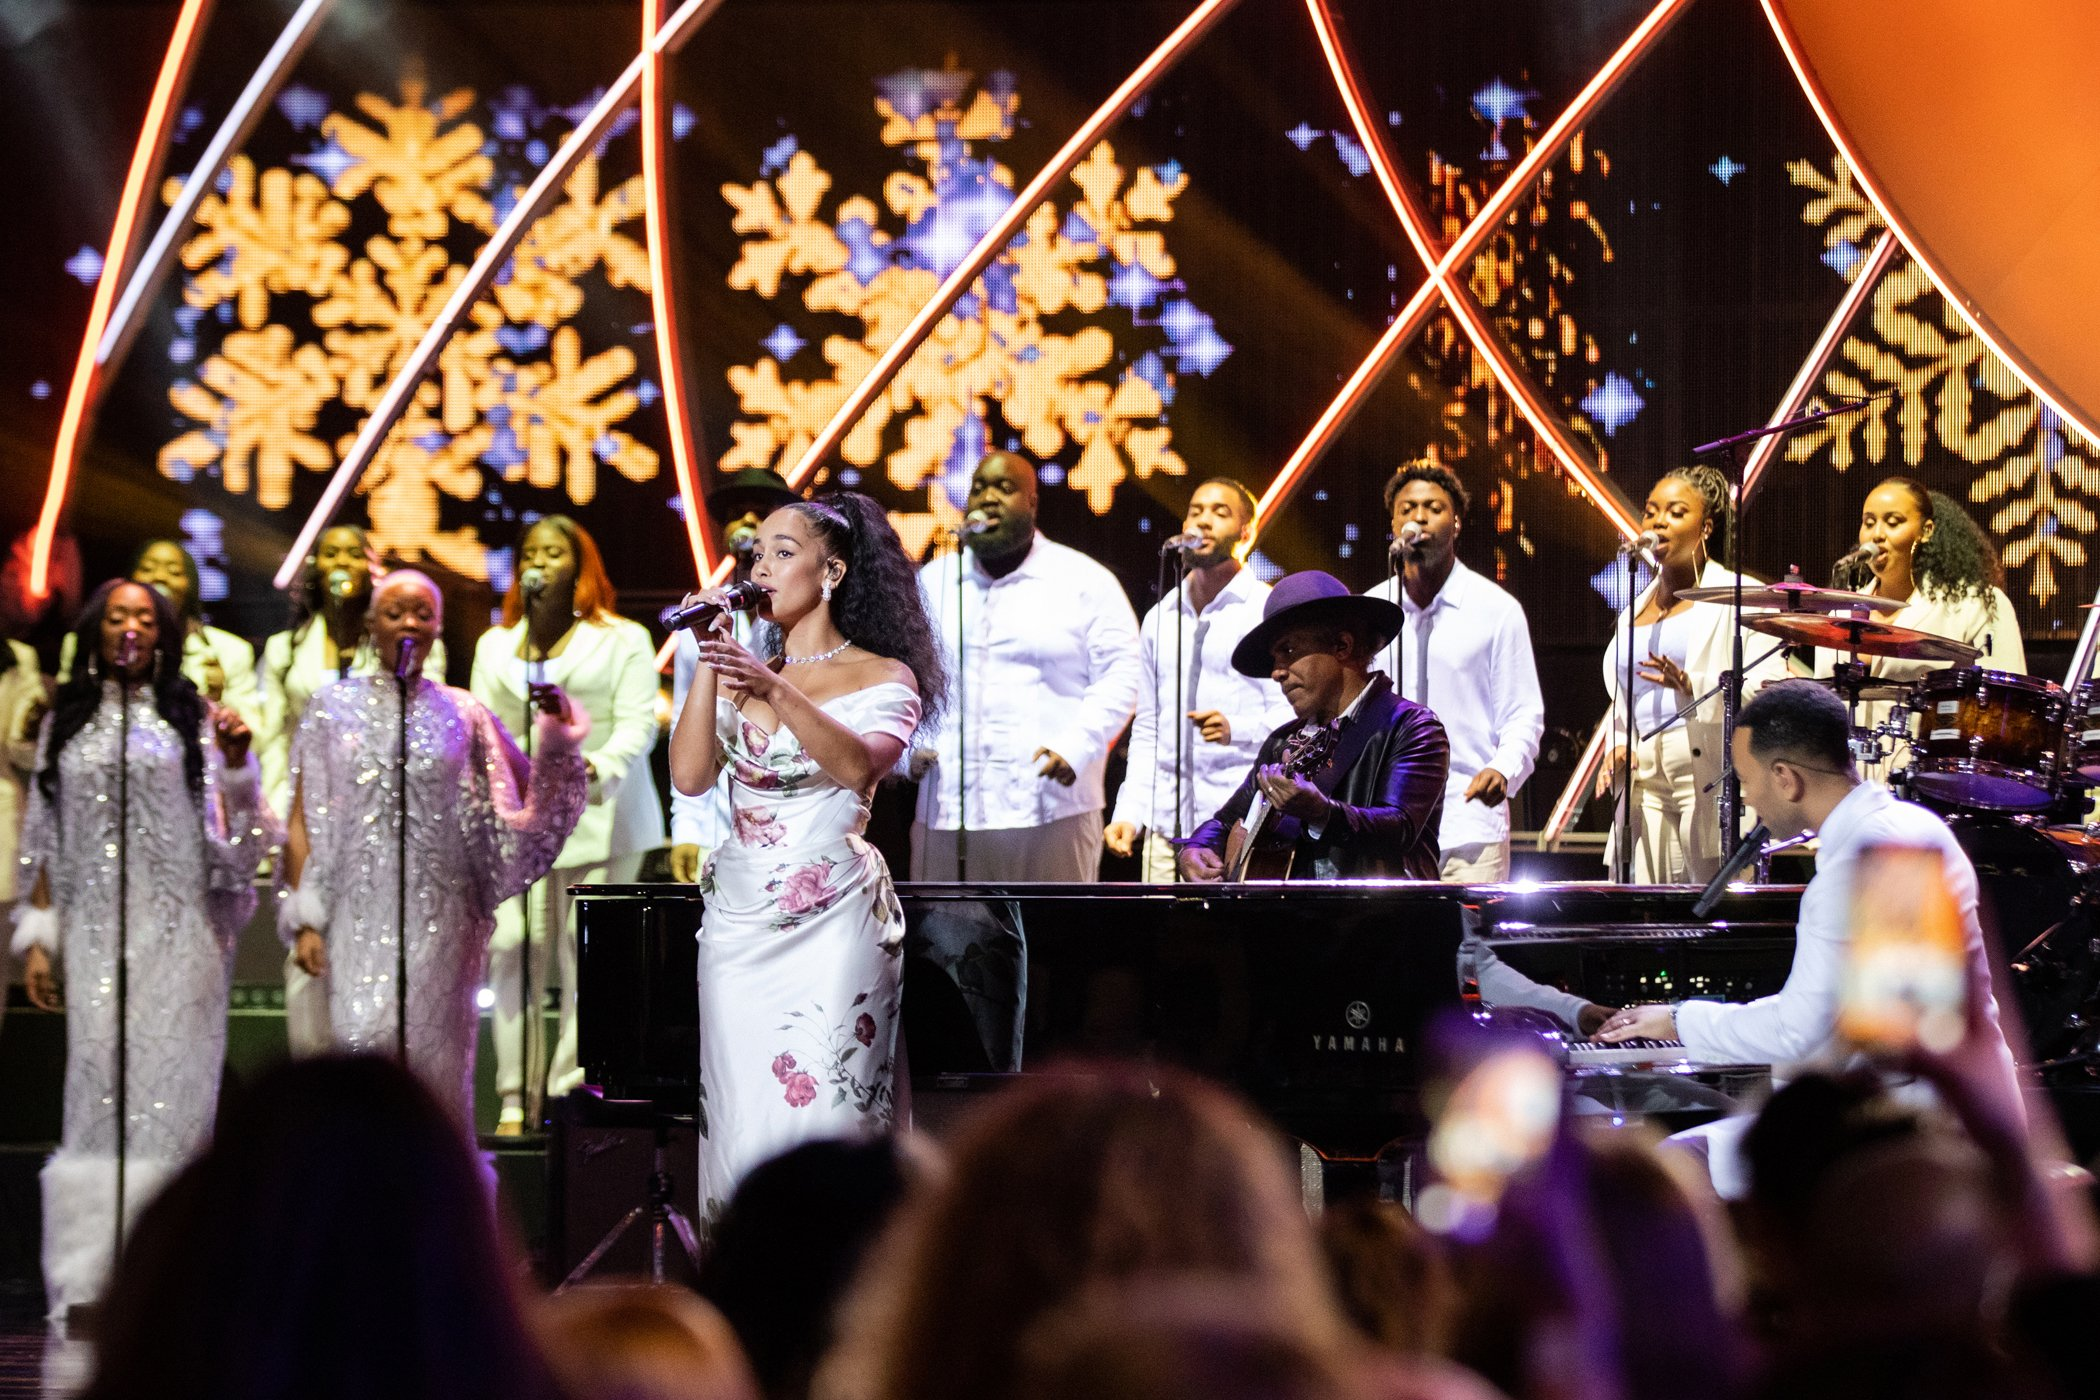 Jorja Smith und John Legend beim Global Citizen Prize am 13. Dezember 2019. Bild: Grey Hutton für Global Citizen